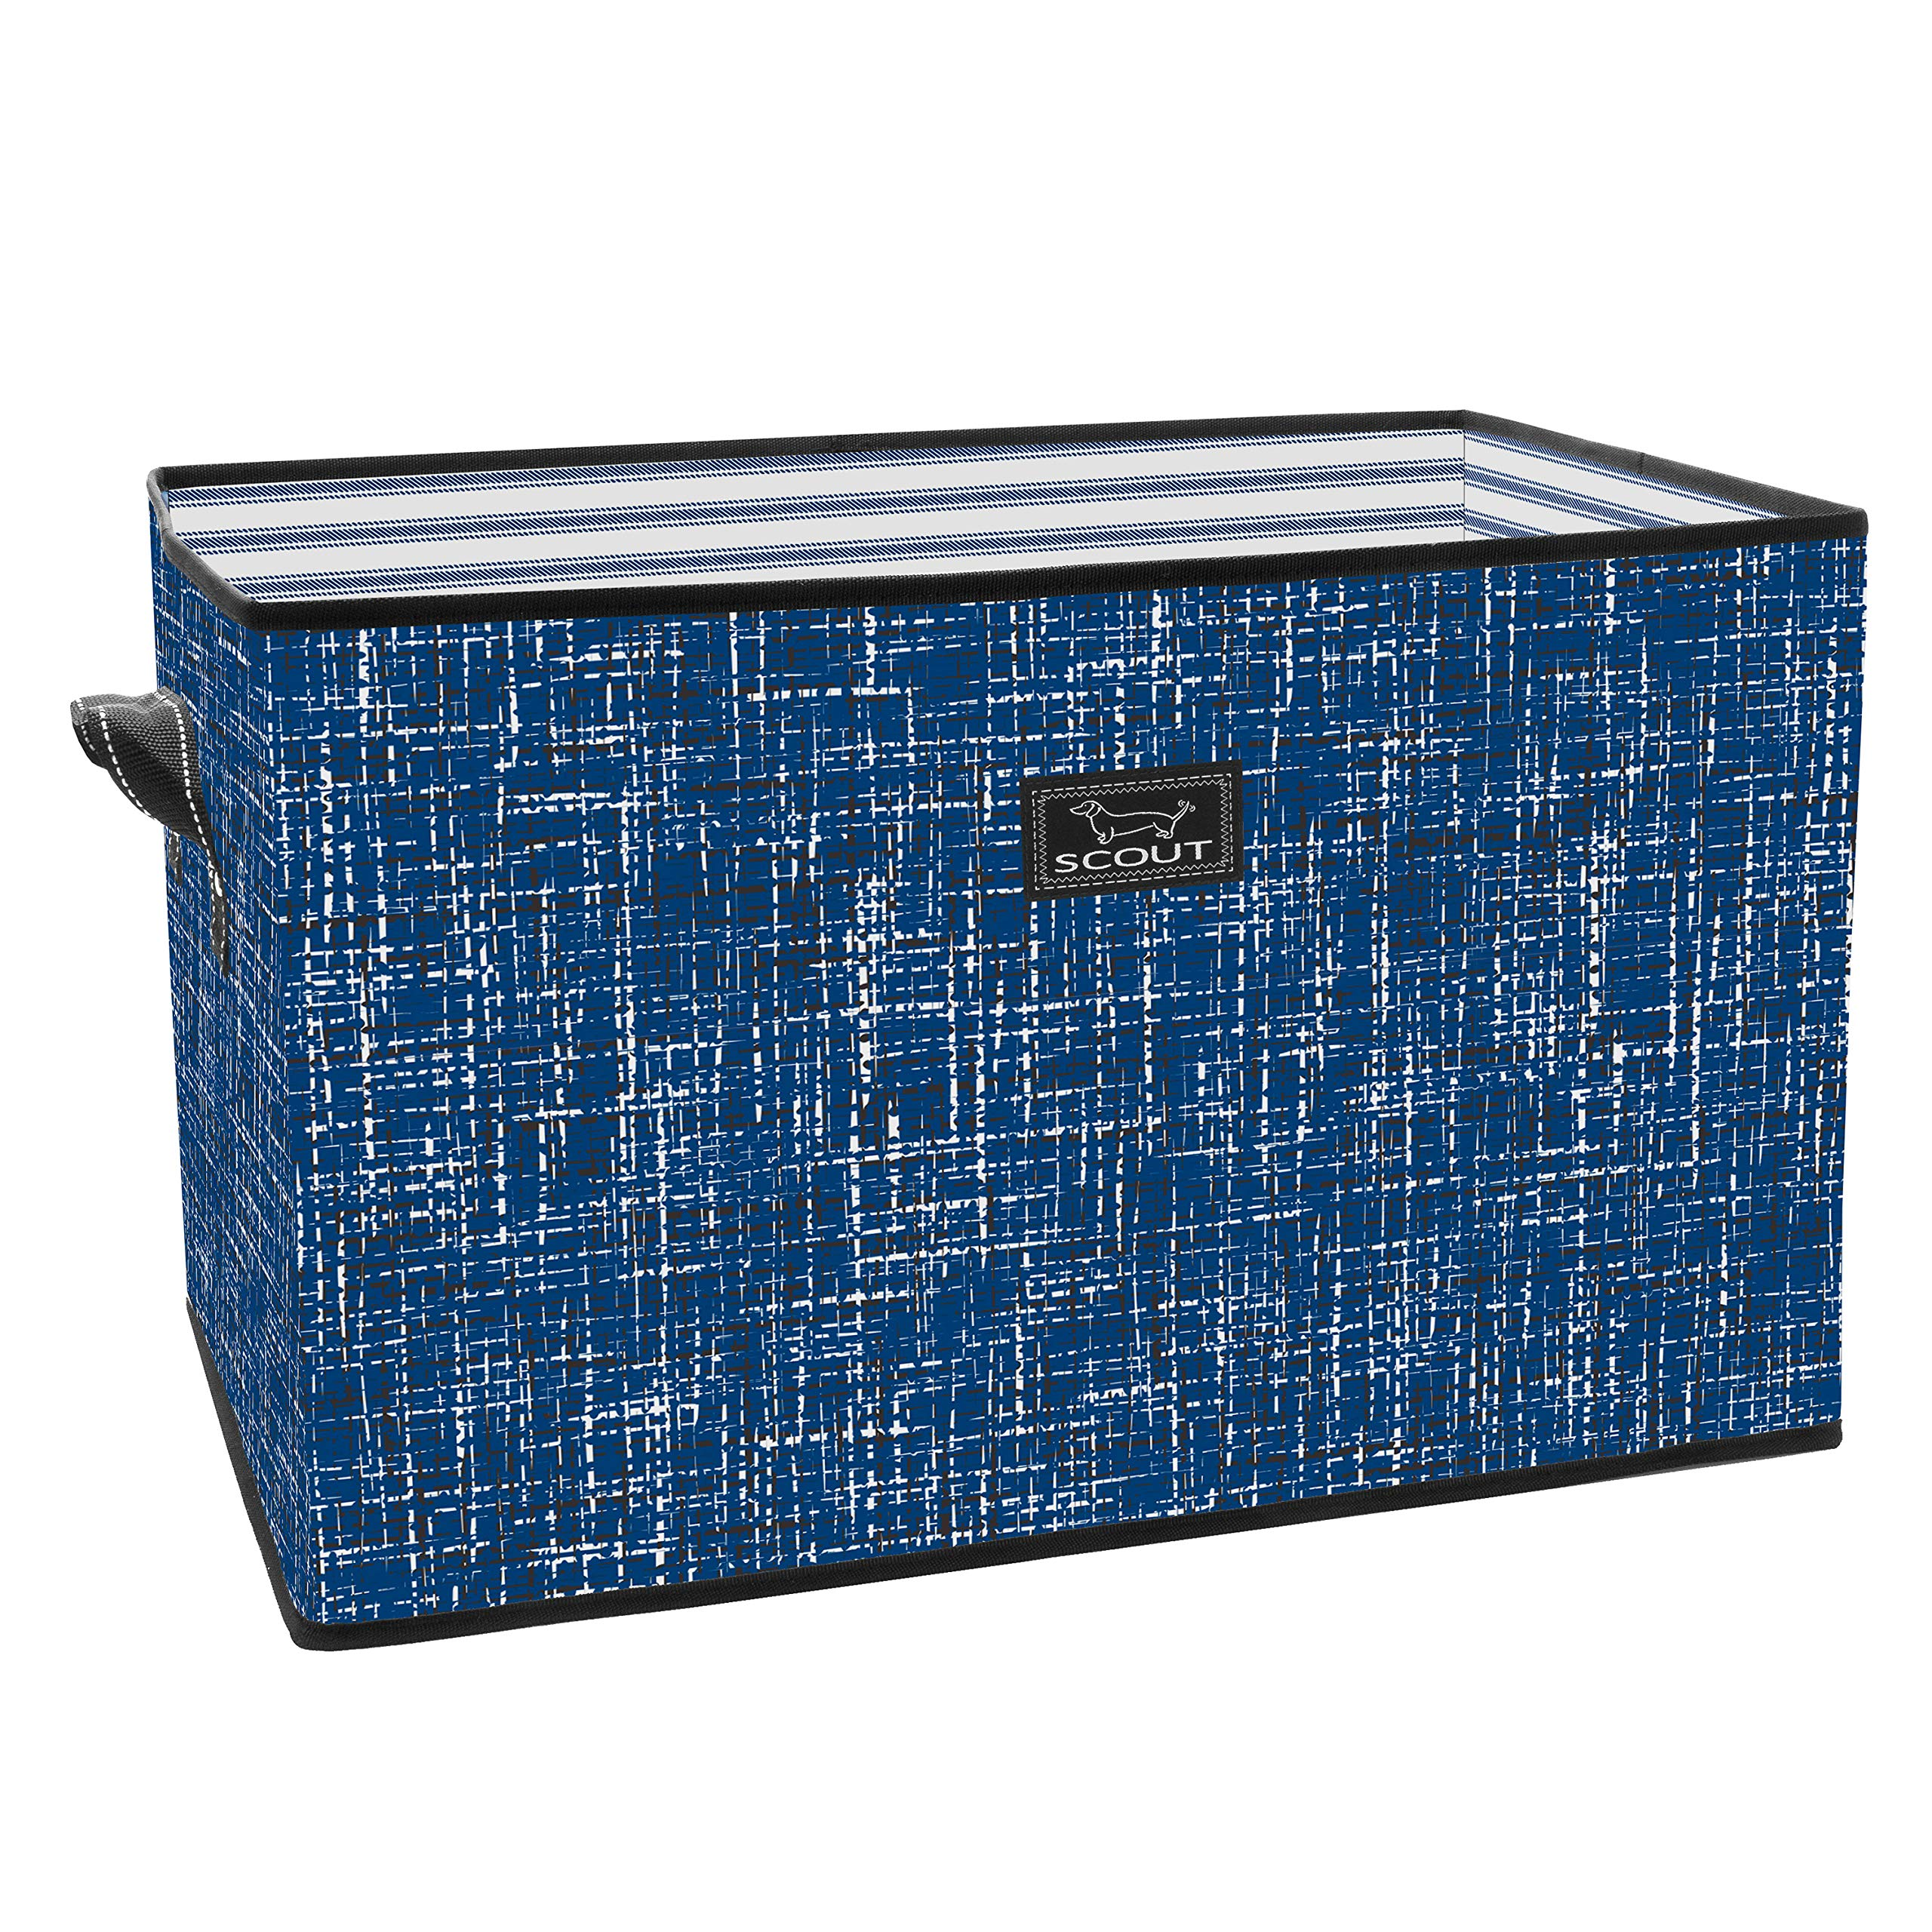 scout junque trunk extra large collapsible storage bin folds flat with 698658500494 ebay. Black Bedroom Furniture Sets. Home Design Ideas